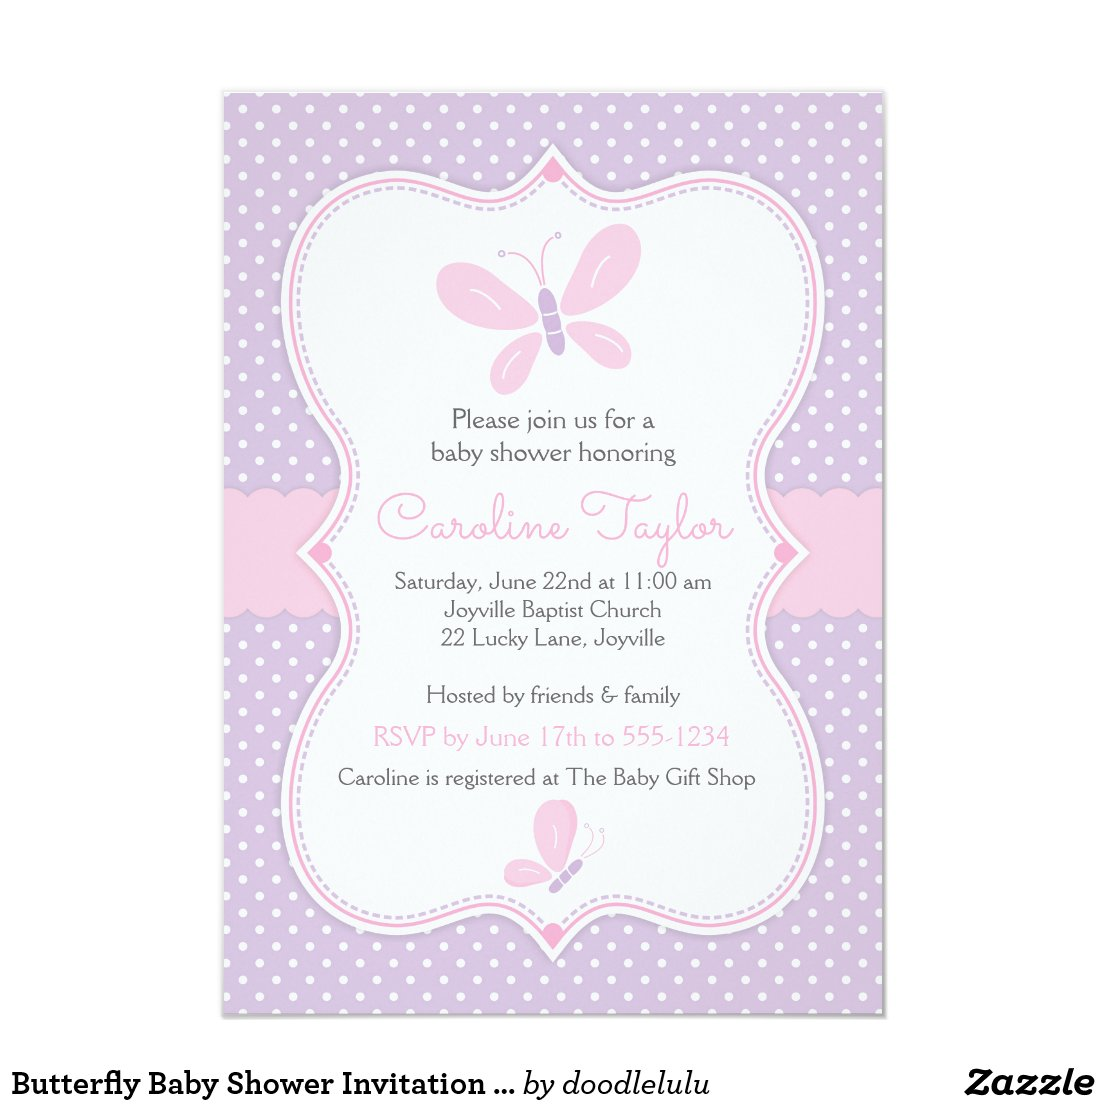 Butterfly Baby Shower Invitation purple pink